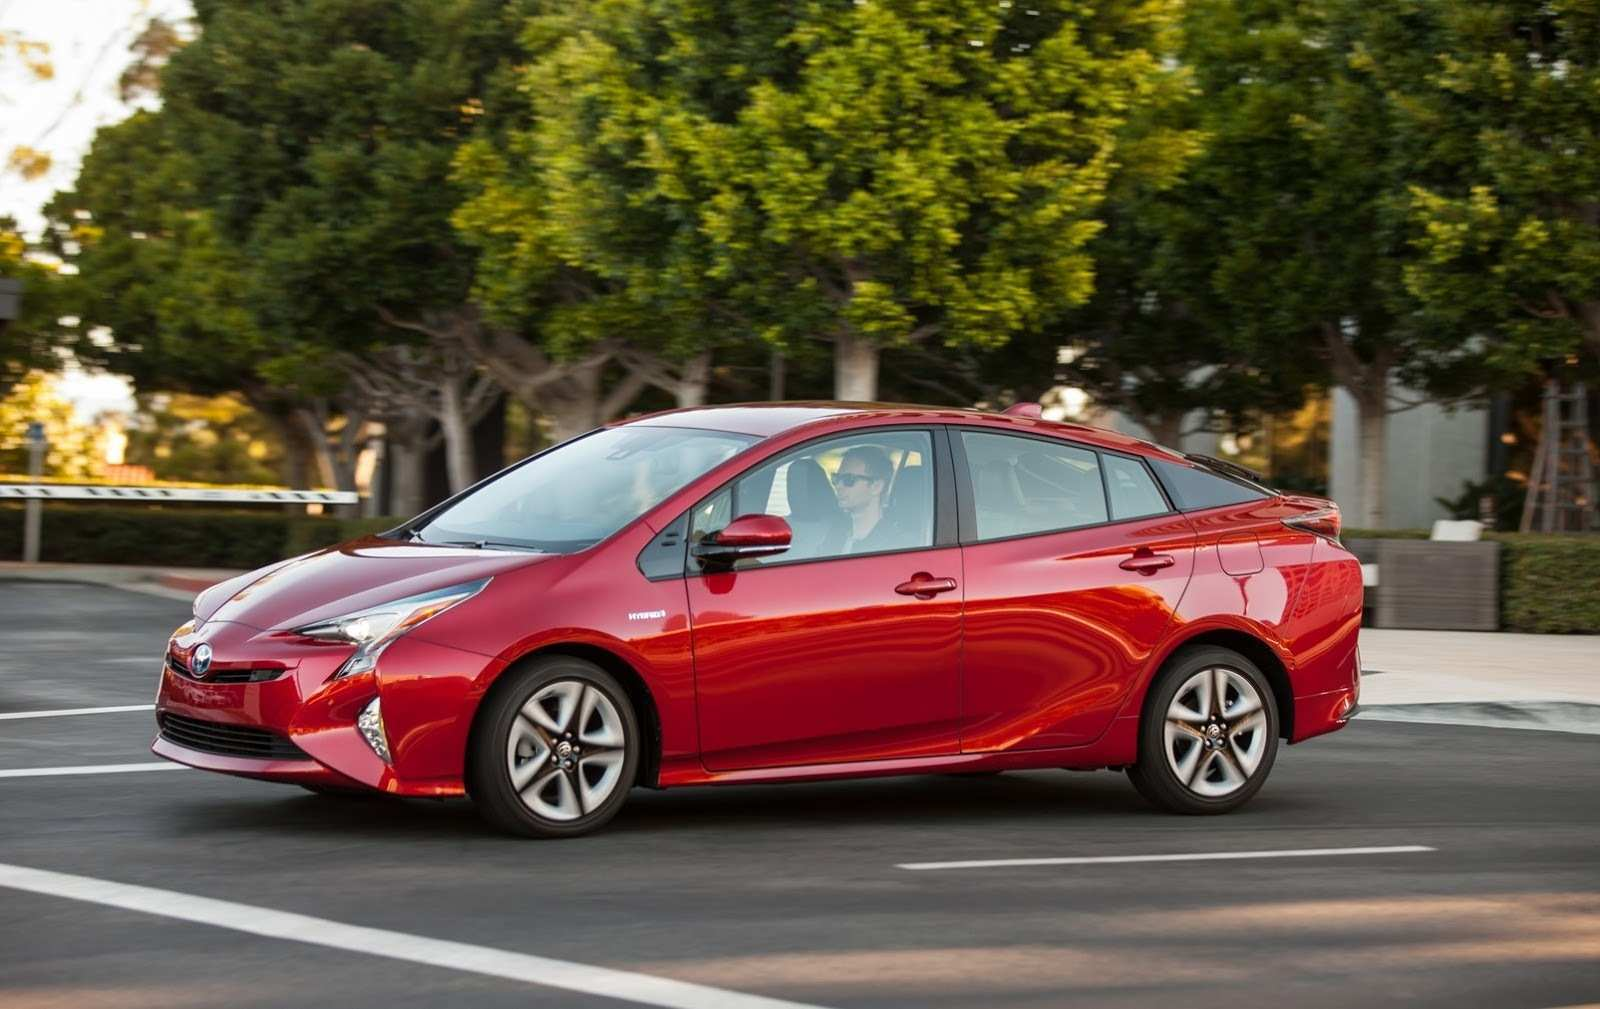 60 The 2020 Spy Shots Toyota Prius Research New